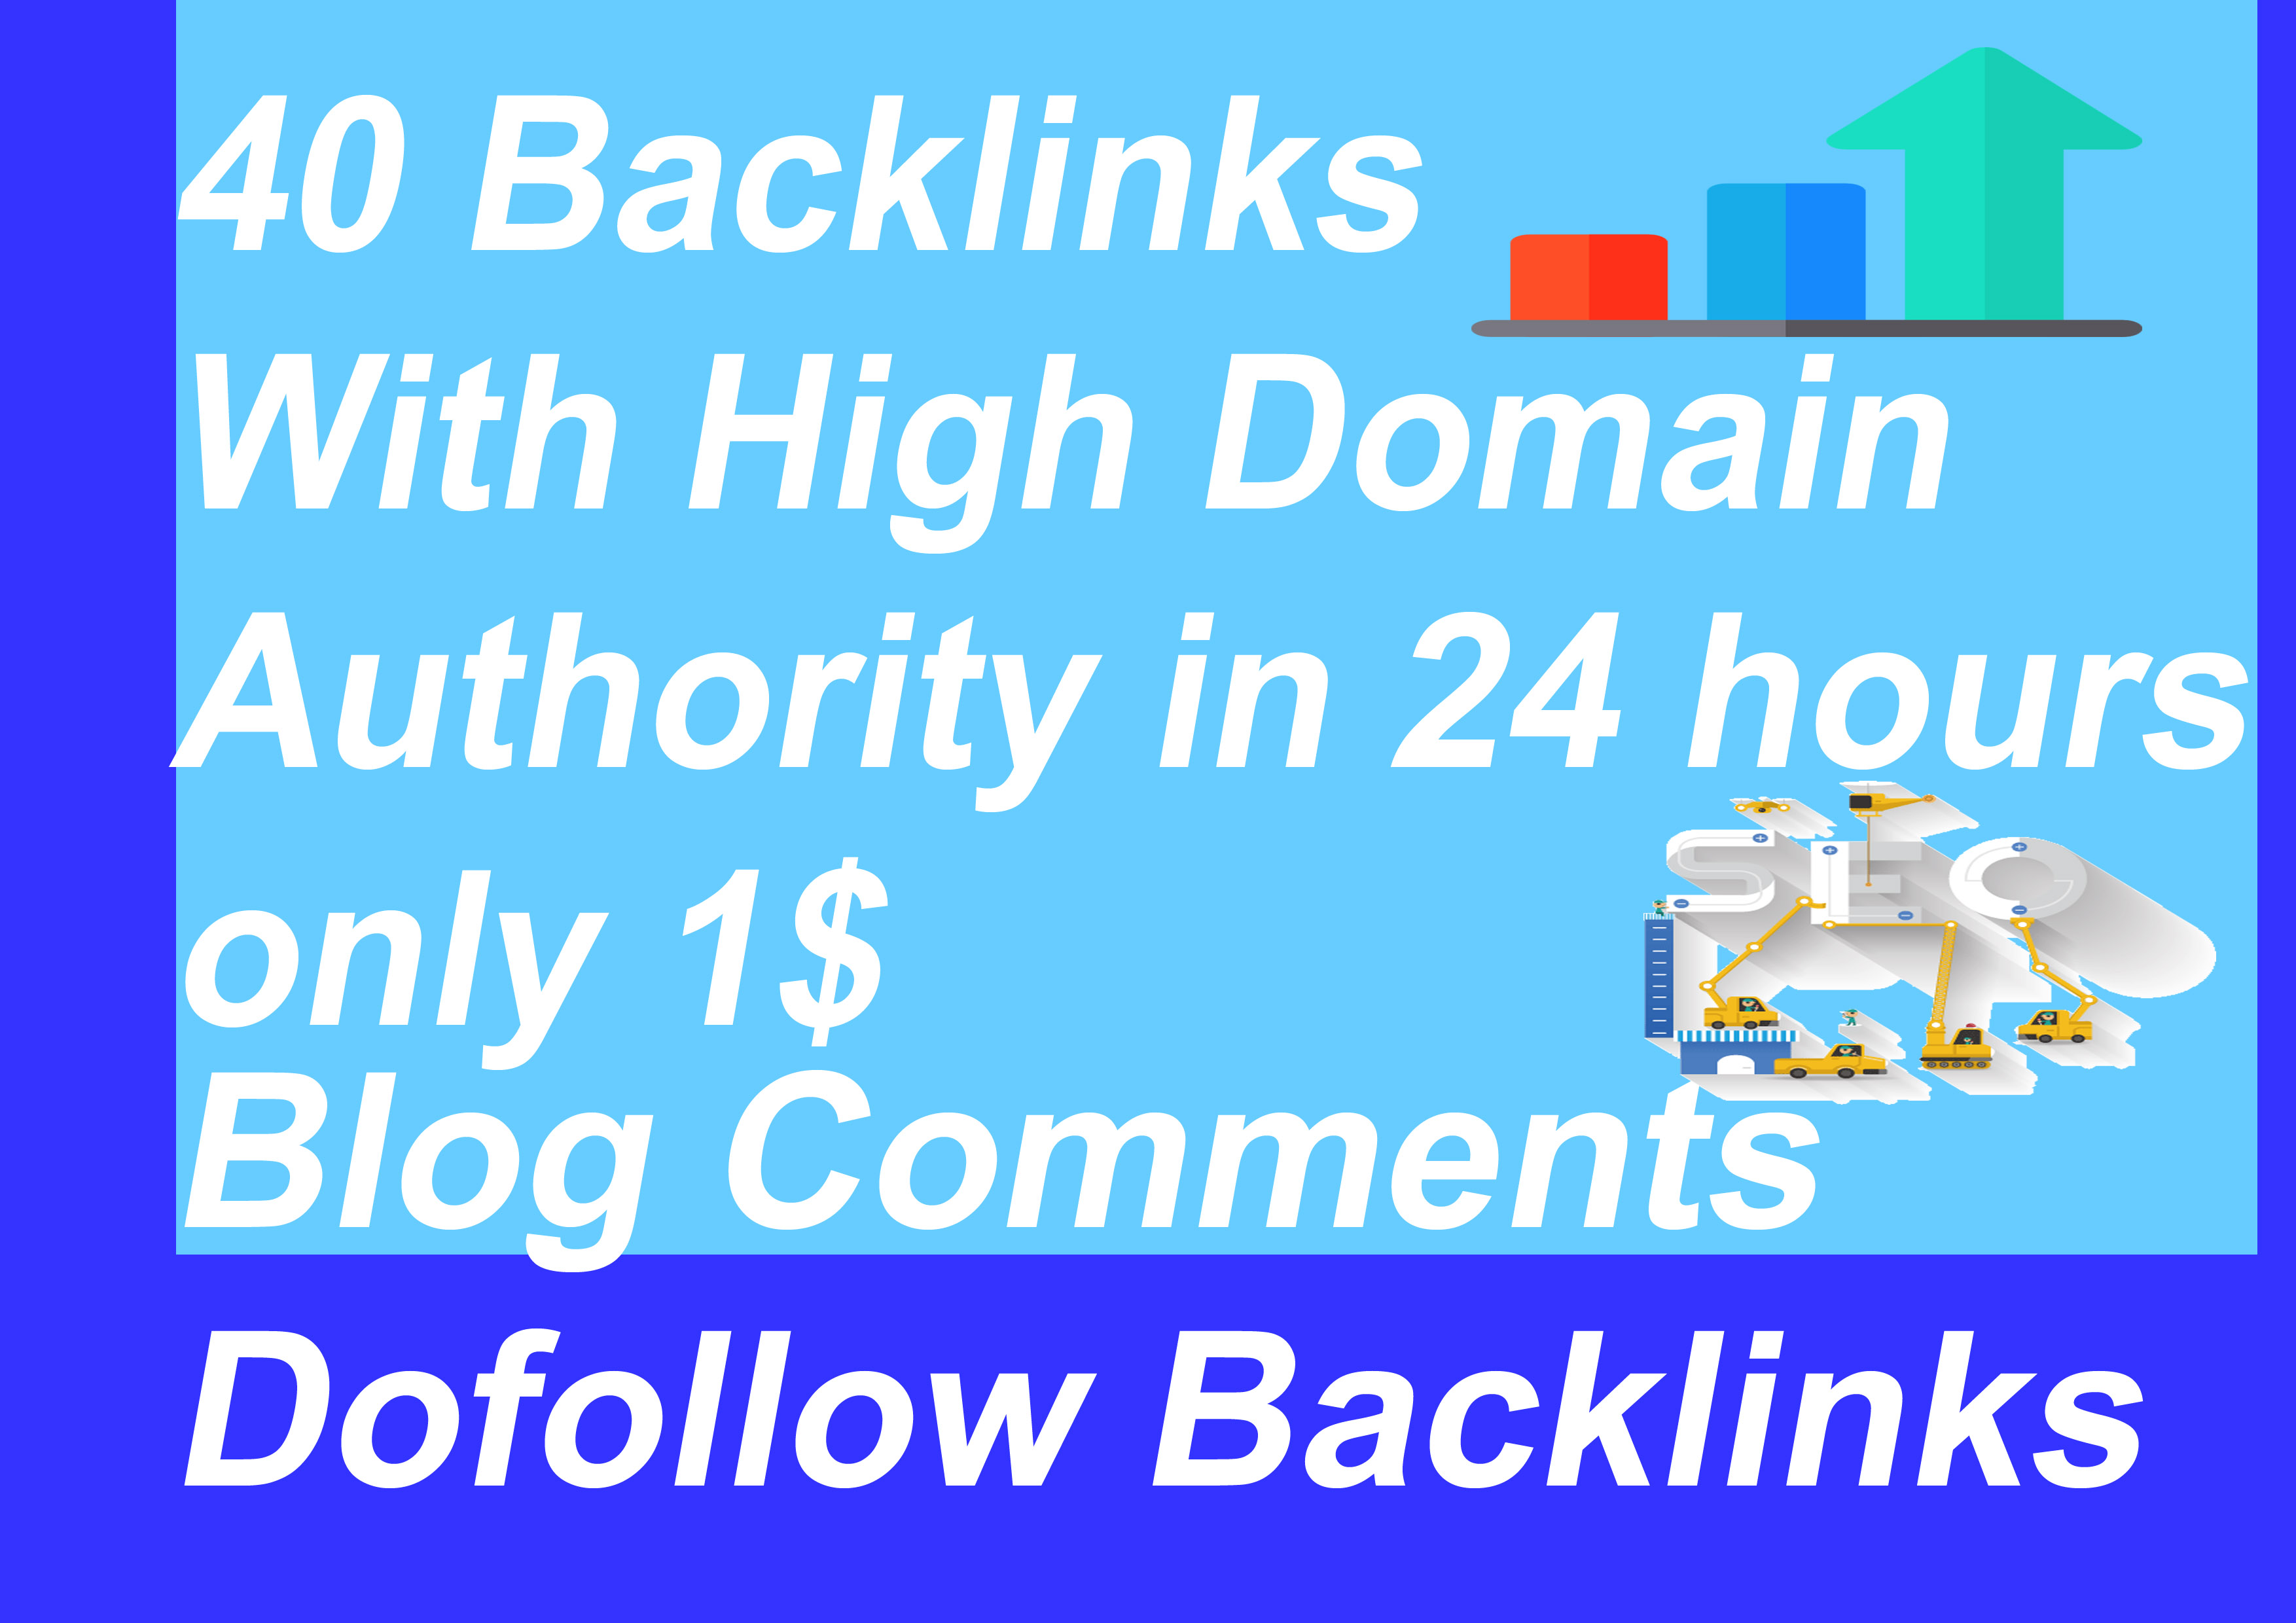 i will do 40 Backlinks High Domain Authority in 24 Hours